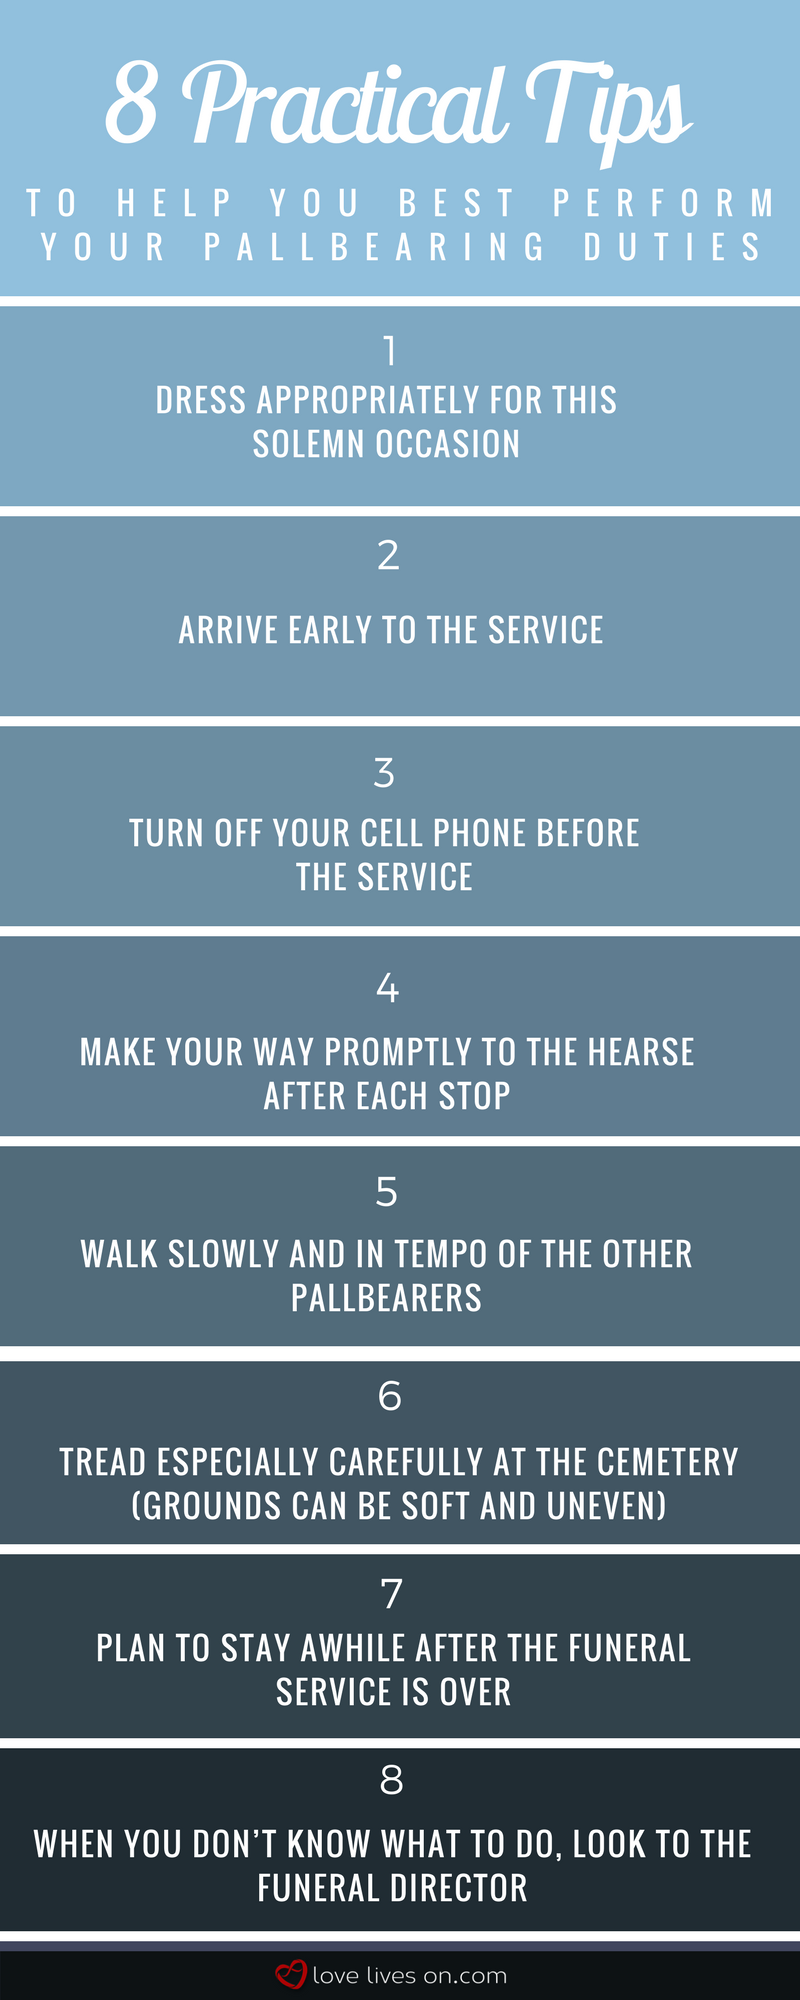 22 helpful tips for all occasions